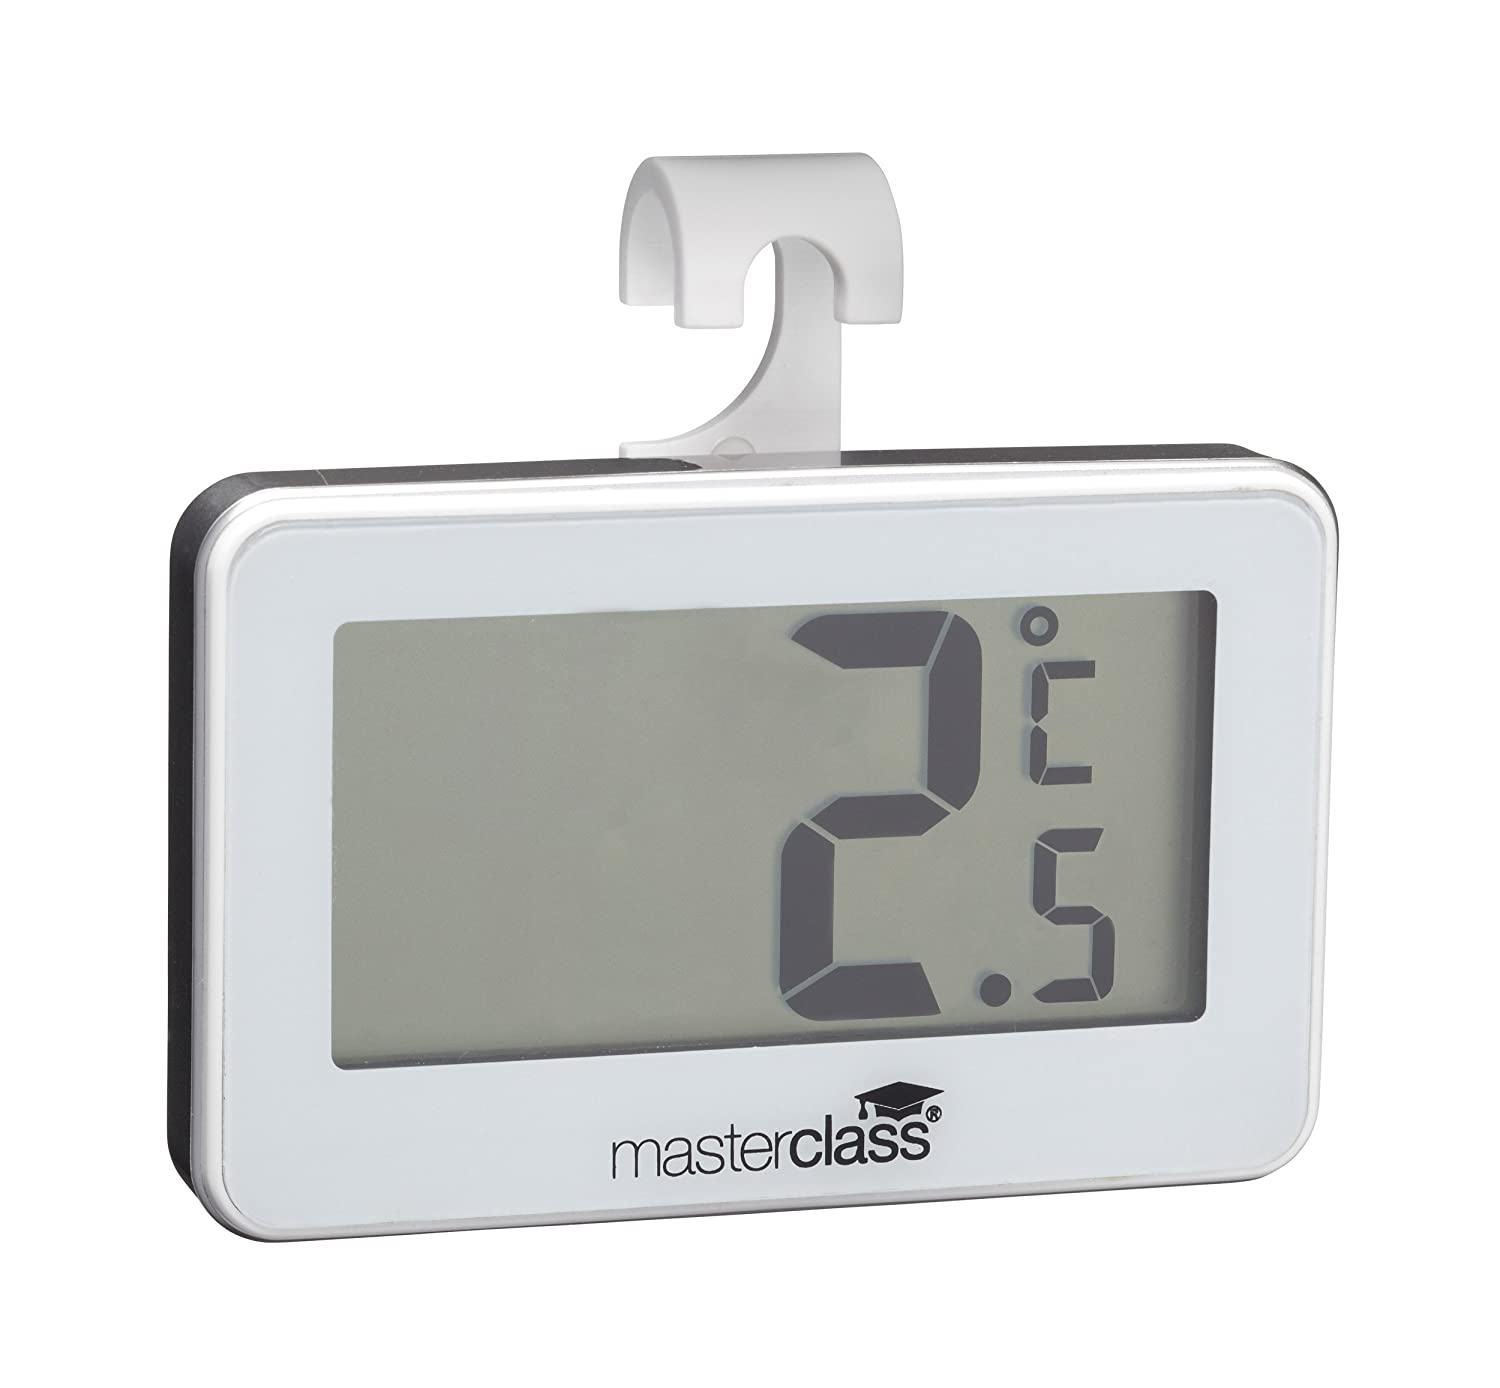 Master Class Wireless Digital Fridge Thermometer